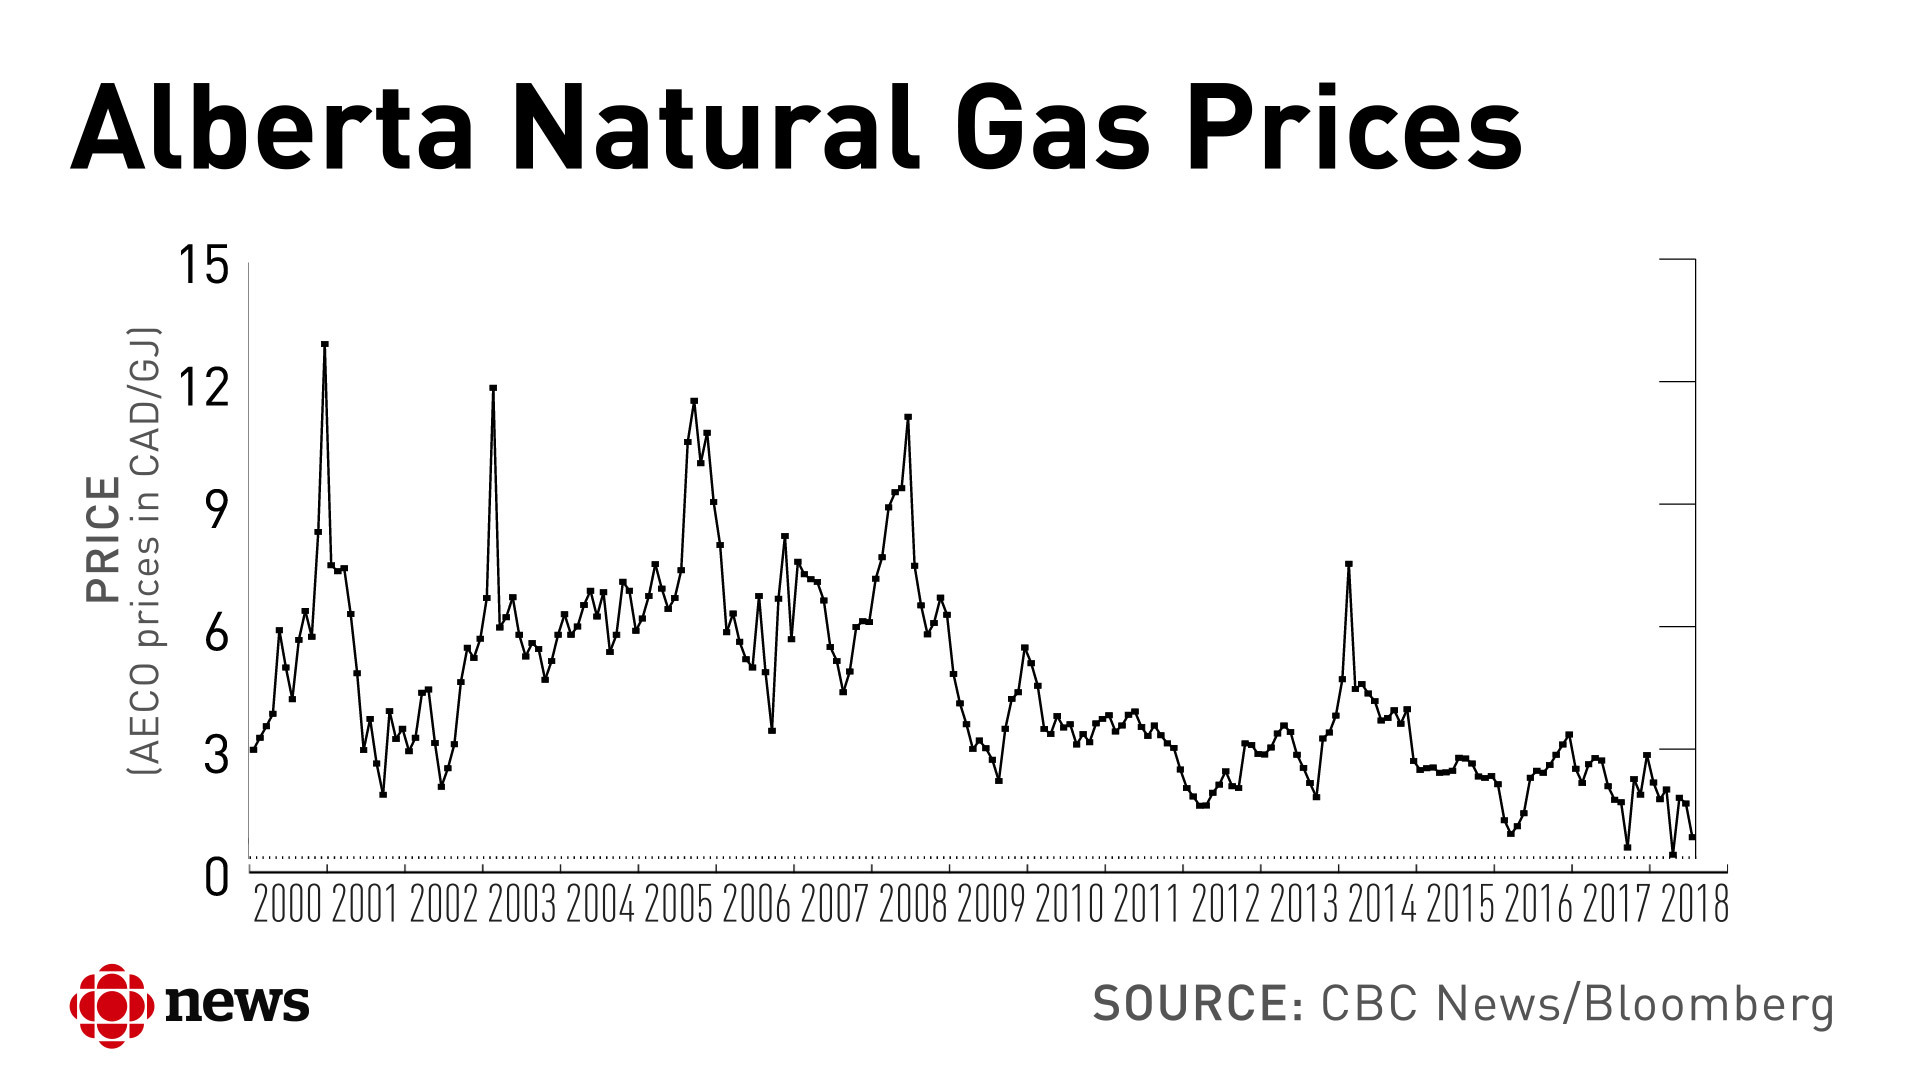 Natural gas prices have trended down since 2008.